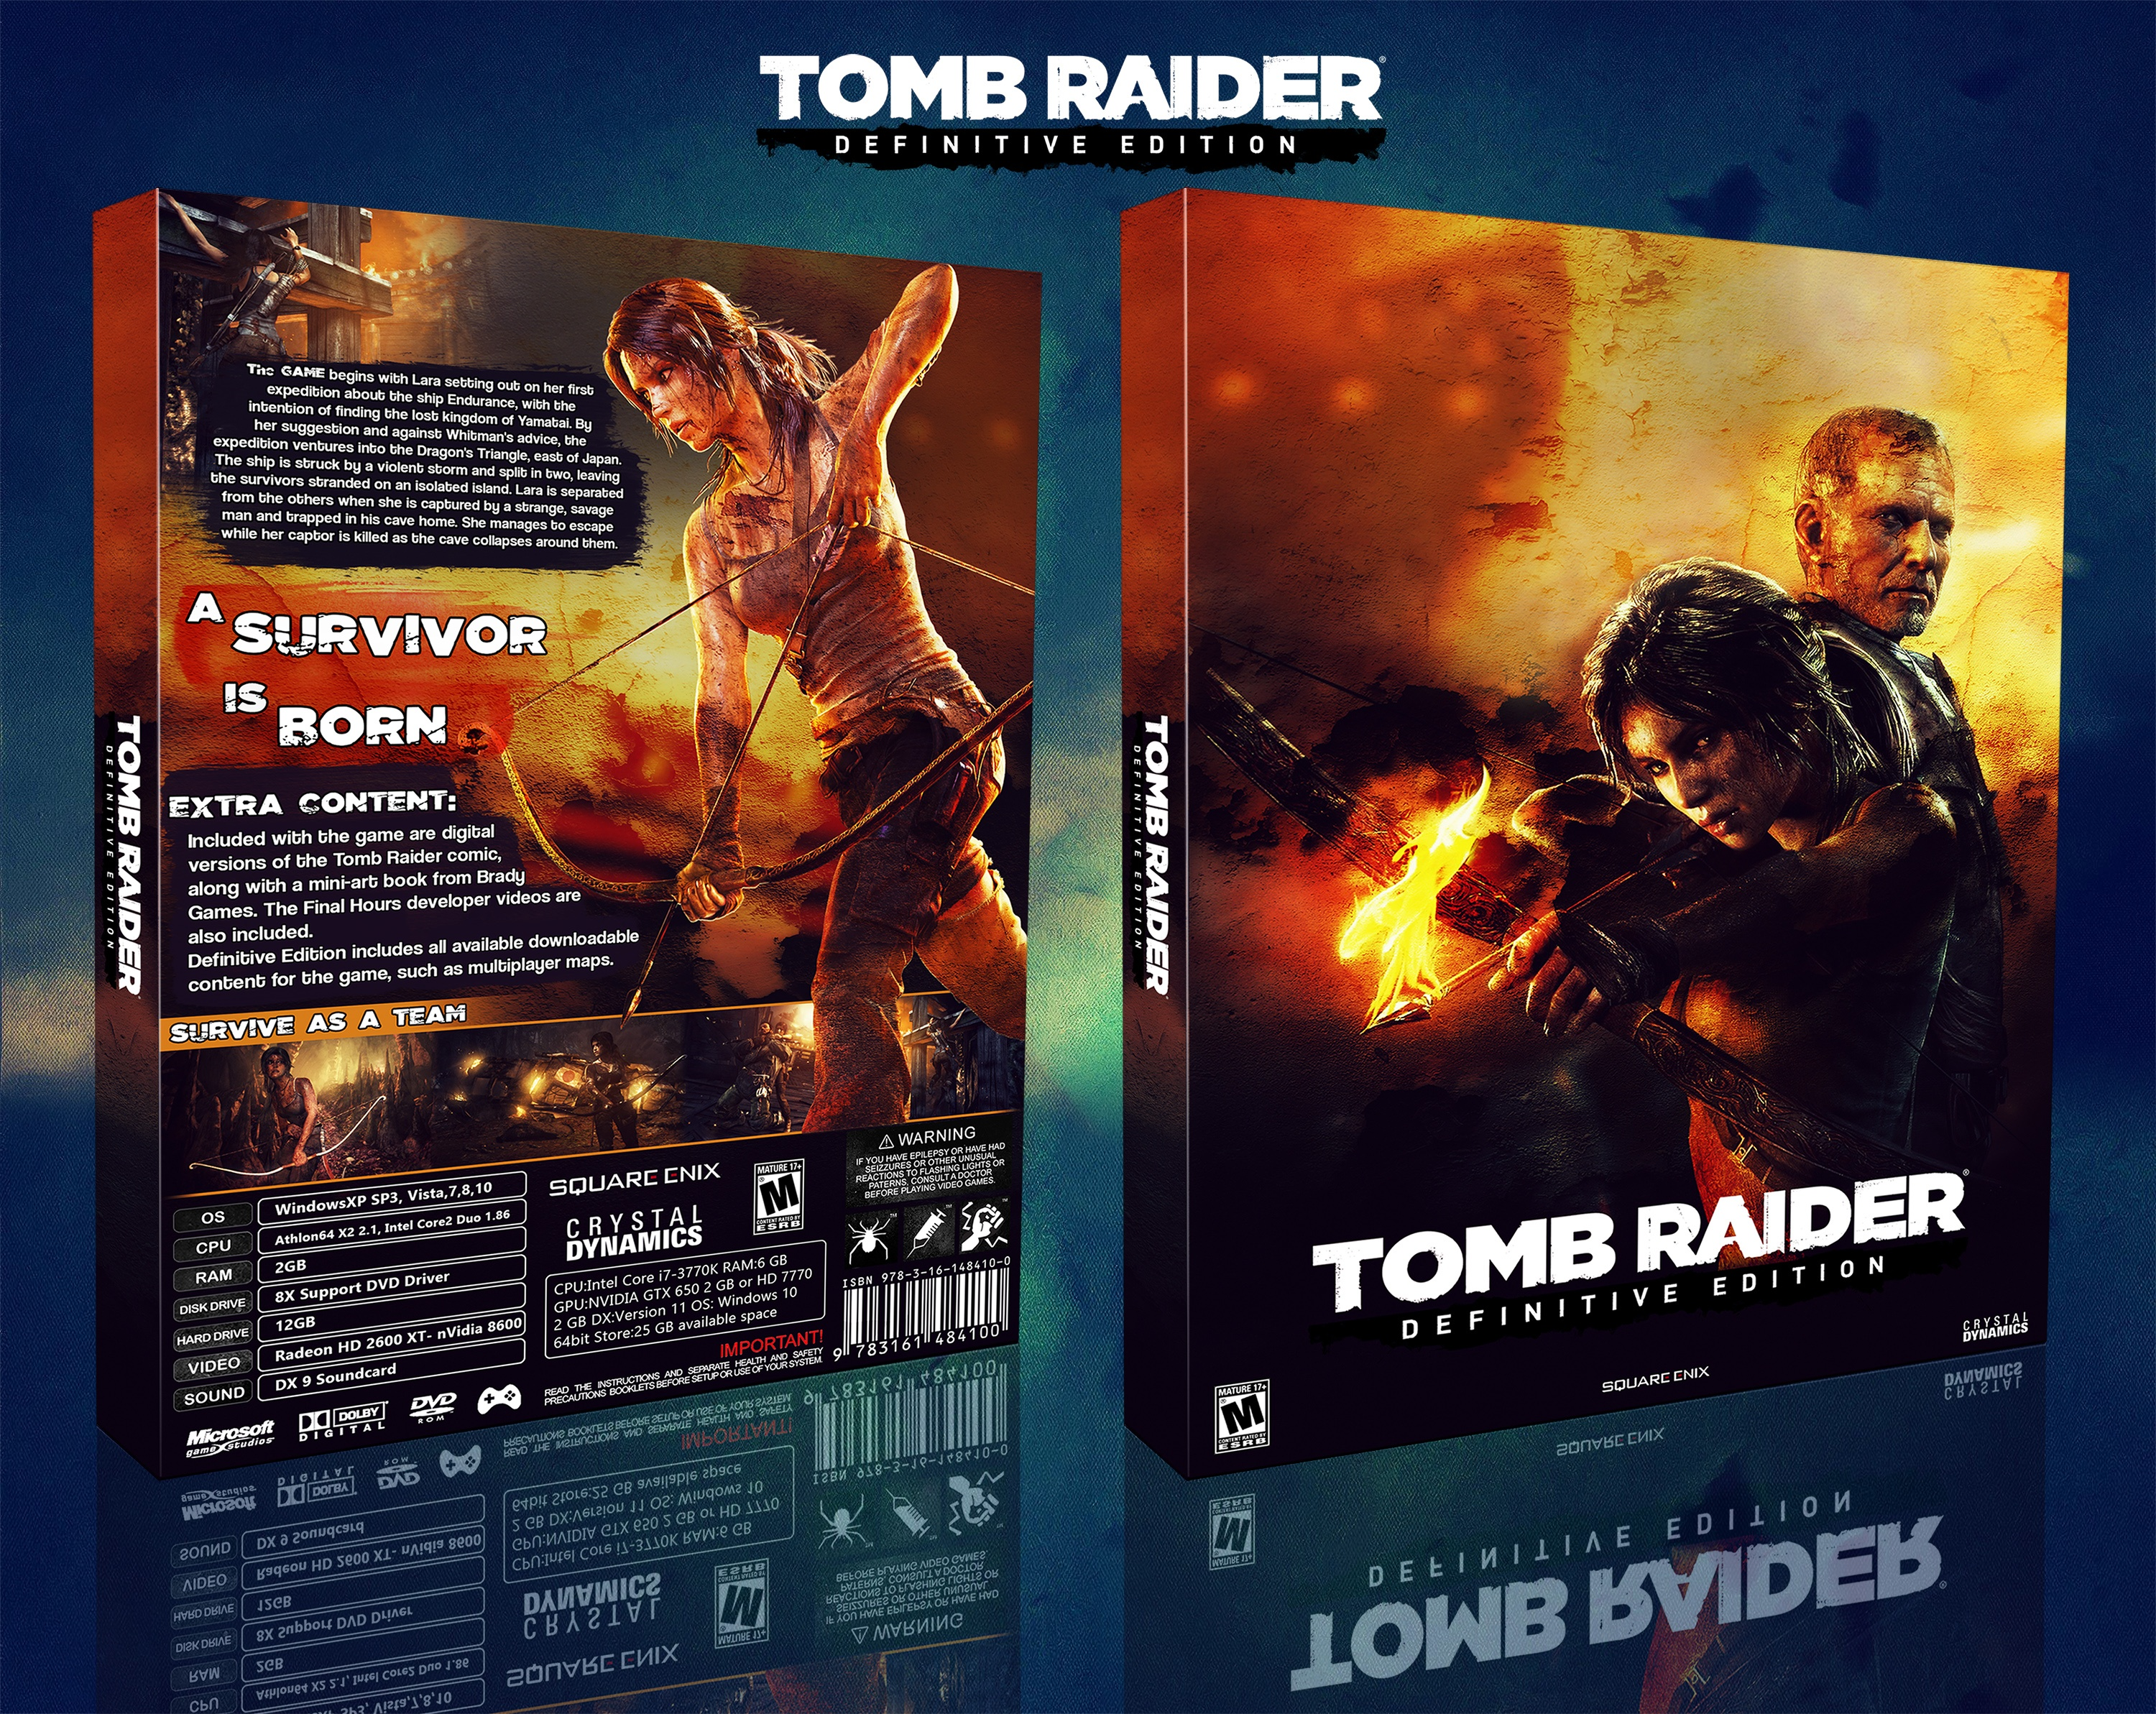 Tomb Raider : Definitive Edition box cover